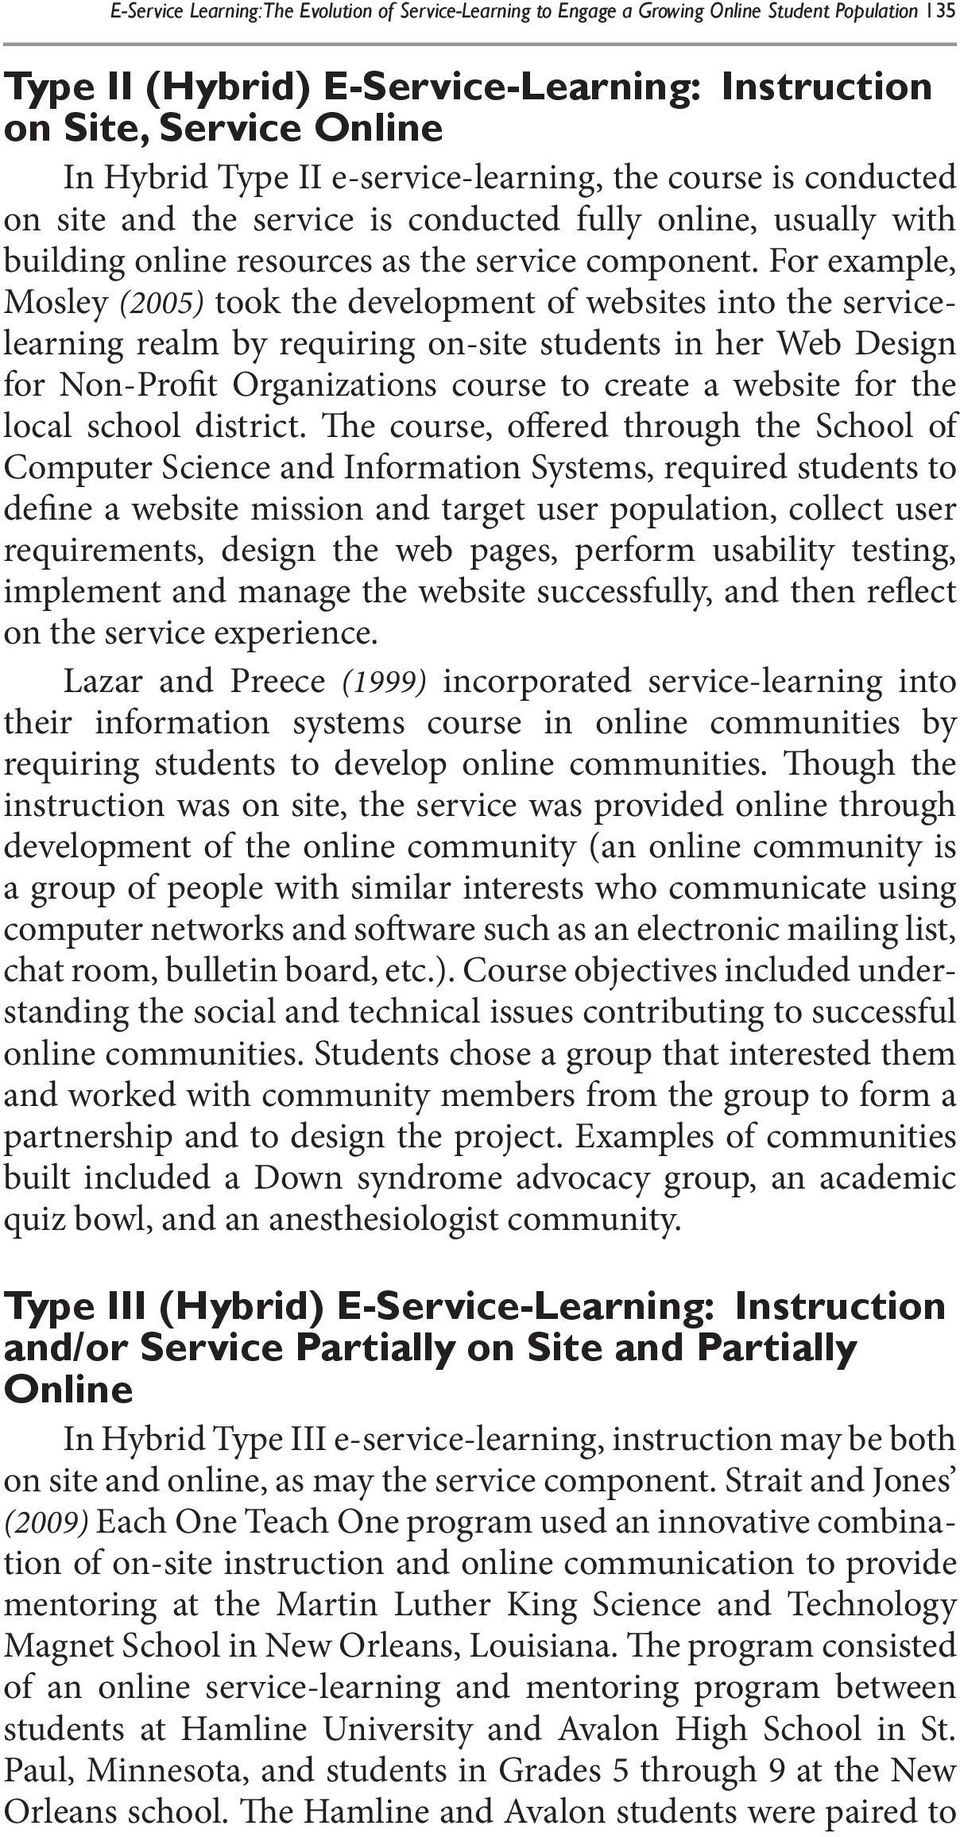 For example, Mosley (2005) took the development of websites into the servicelearning realm by requiring on-site students in her Web Design for Non-Profit Organizations course to create a website for